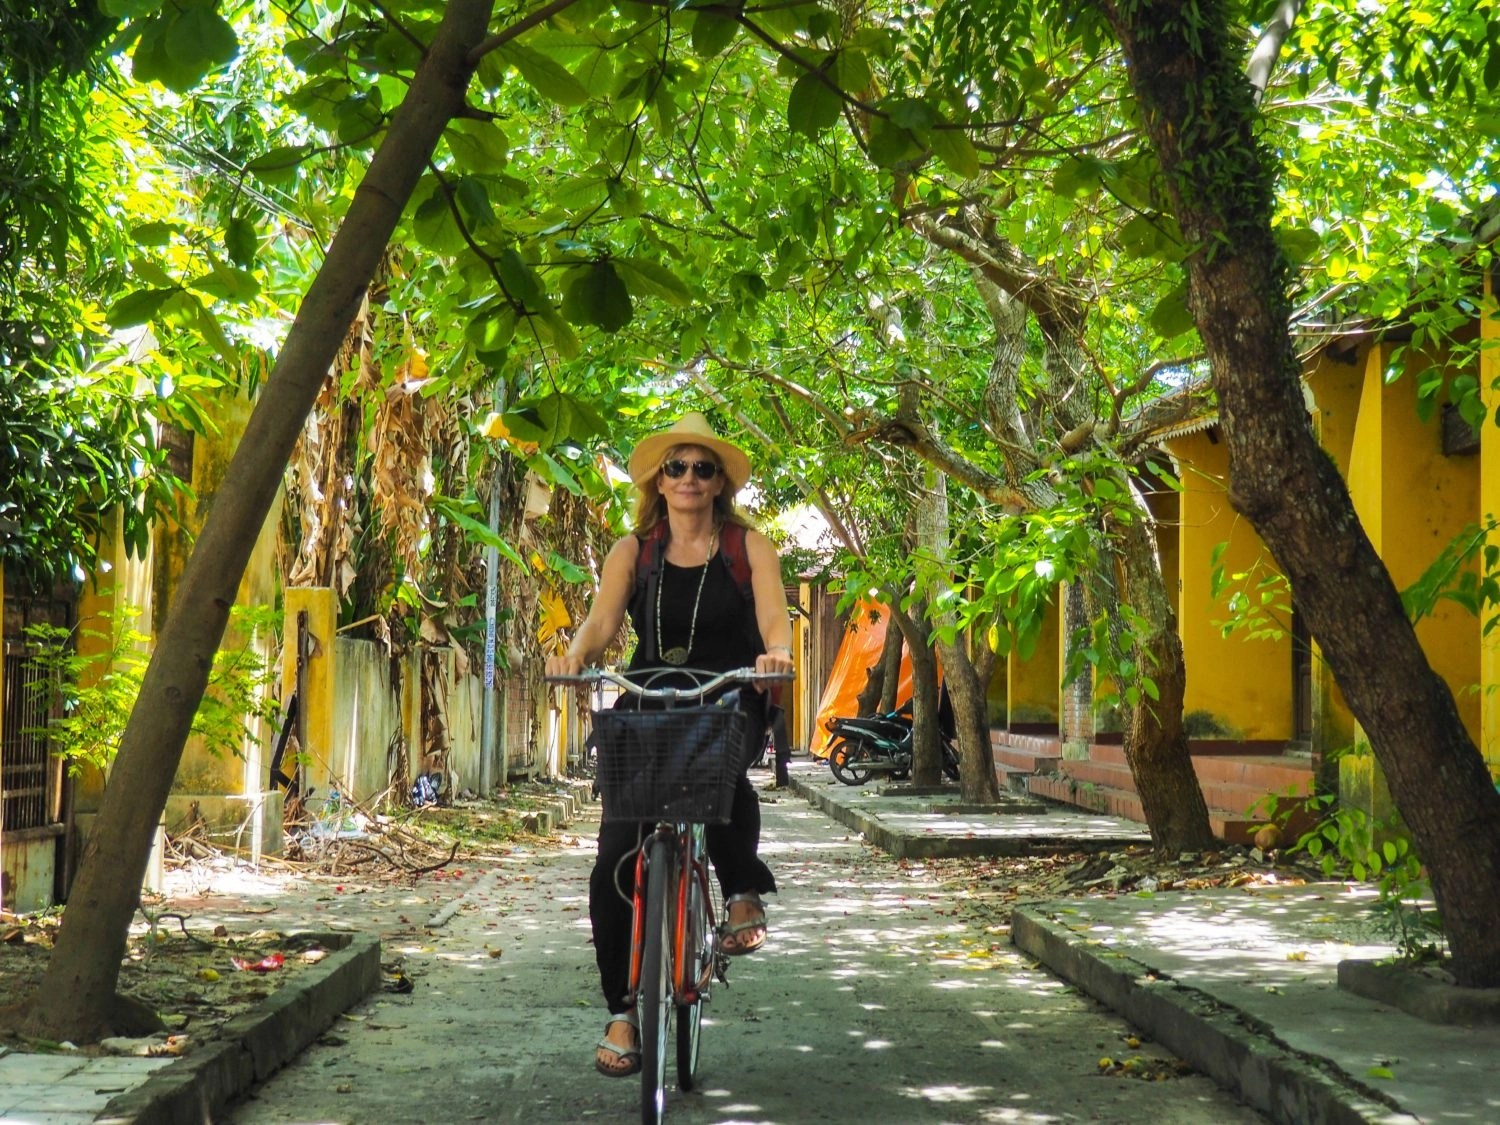 About Kerstin Pilz - Write Your Journey - Always on the lookout for new writing spots. Kerstin Pilz cycling through an alleyway in Hoi An, Vietnam.